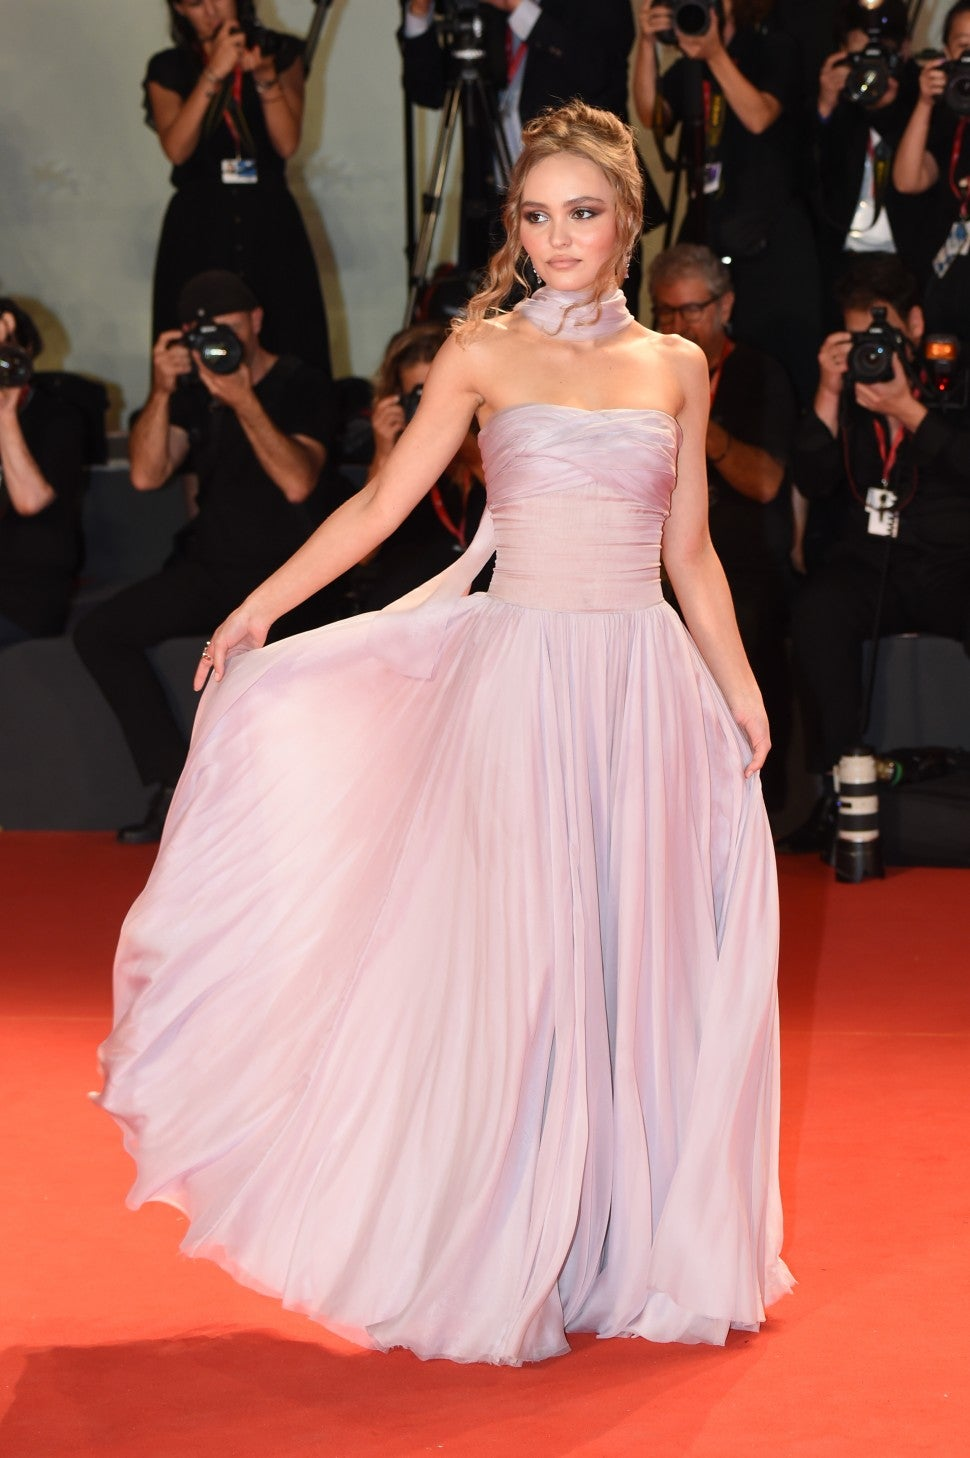 Lily-Rose Depp at The King screening at Venice Film Festival